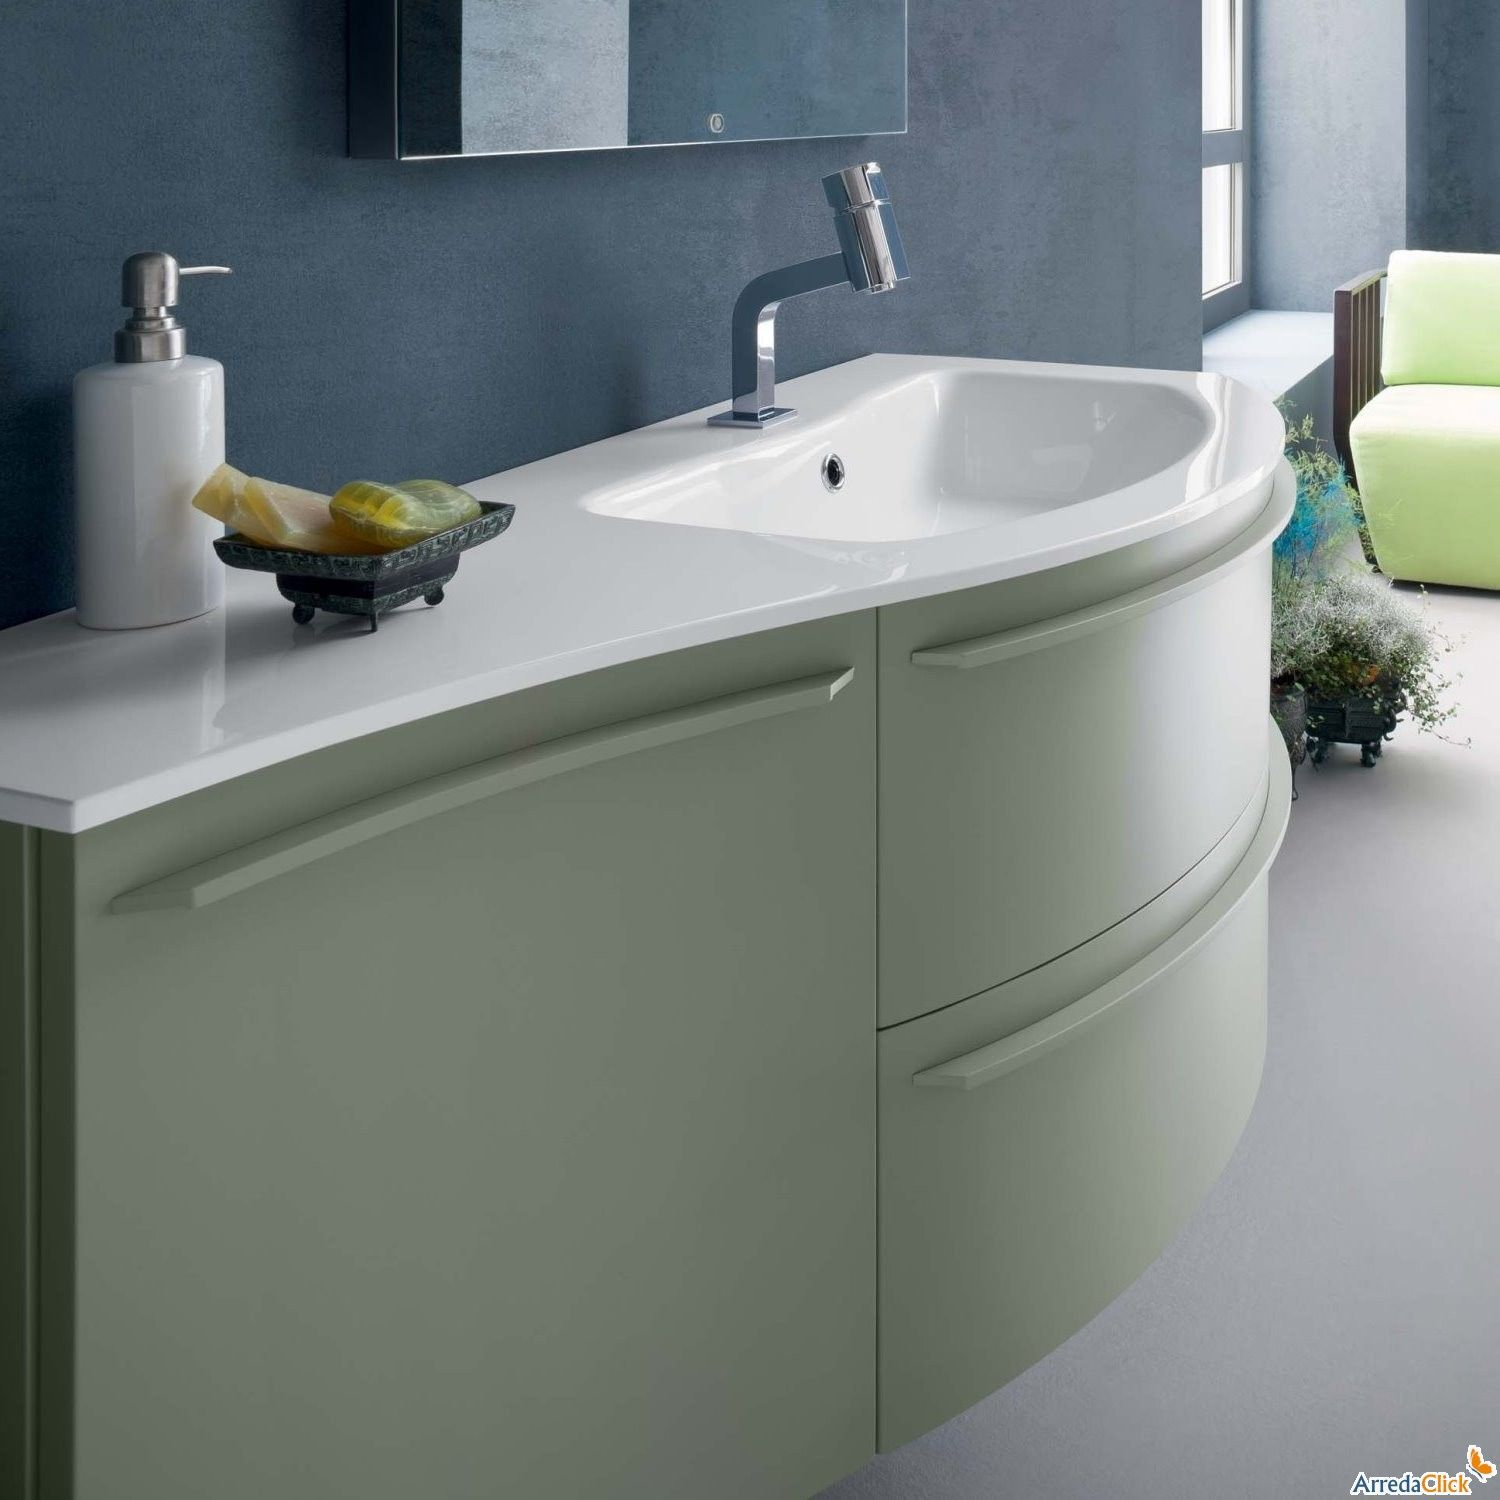 Mobile bagno curvo sospeso n12 atlantic arredaclick bathroom ideas pinterest long - Mobile bagno curvo ...